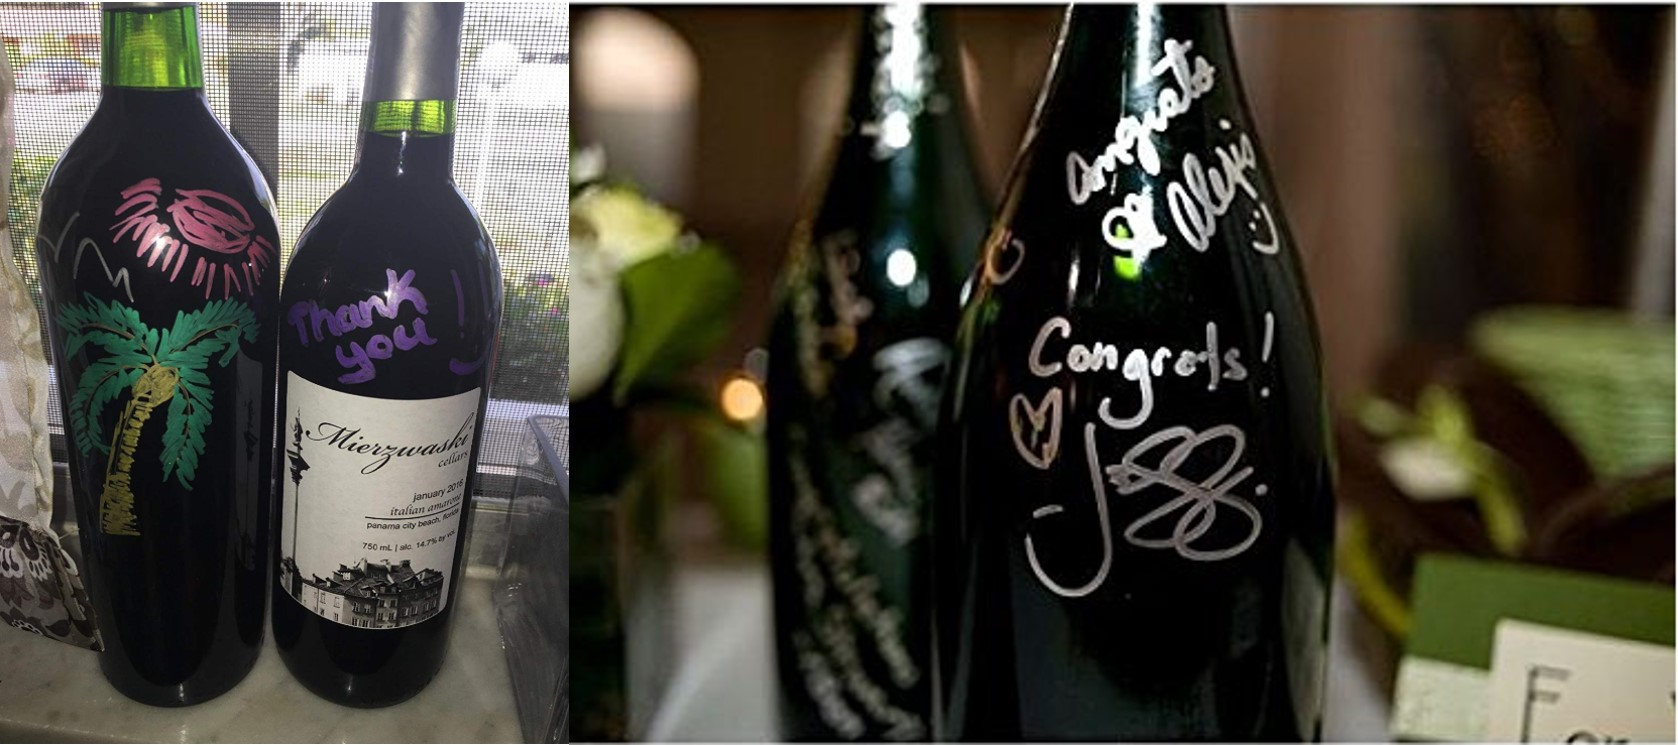 The Wine Glass Marker and bottle marker